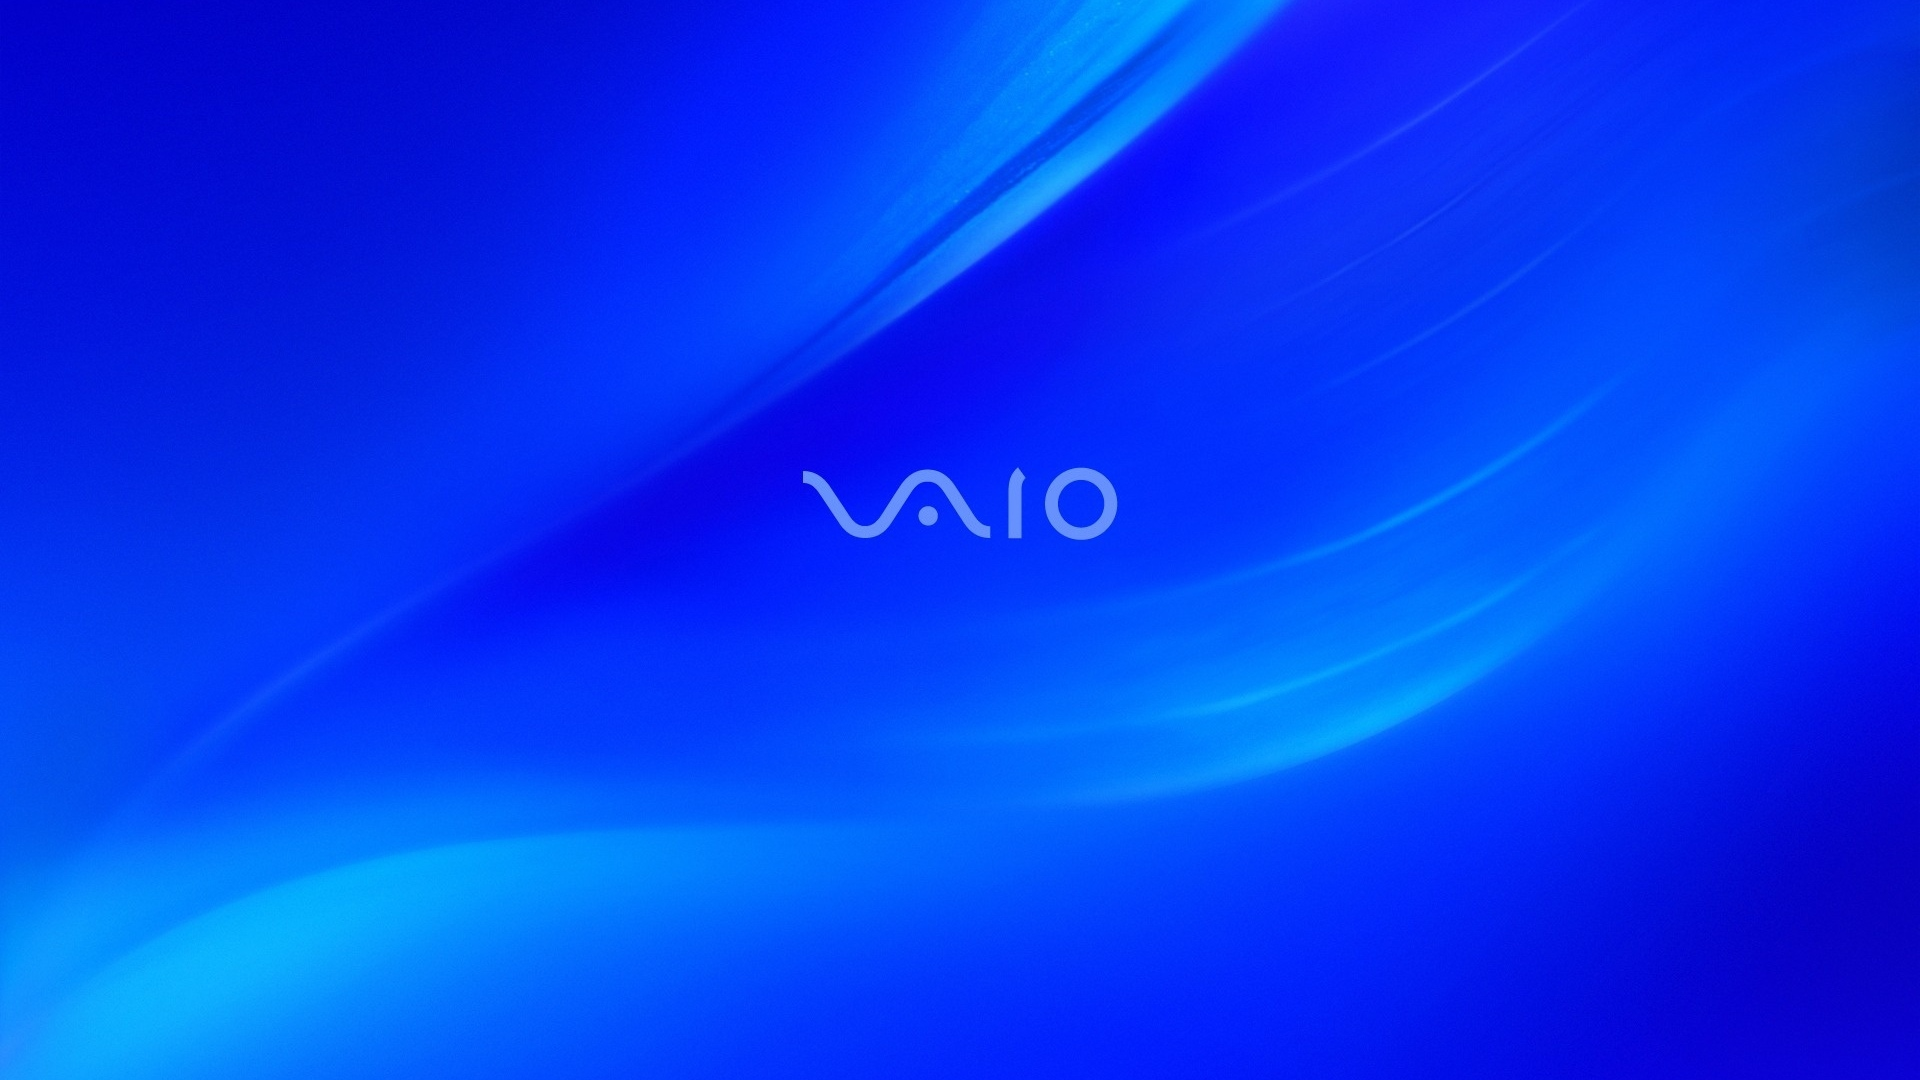 1920x1080 Logo Samsung Vaio Wallpaper Background Full HD 1080p 1920x1080